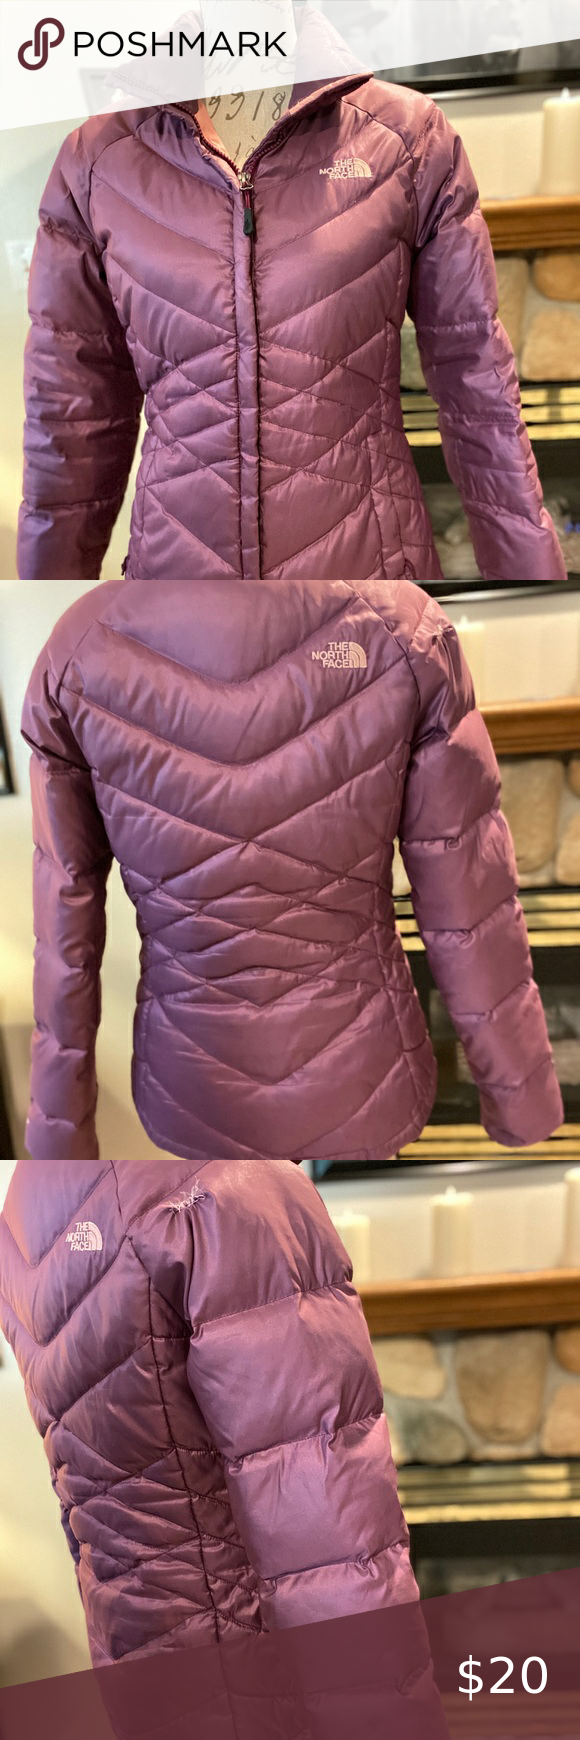 Purple Puffer Jacket By The North Face Purple Coat Clothes Design The North Face [ 1740 x 580 Pixel ]